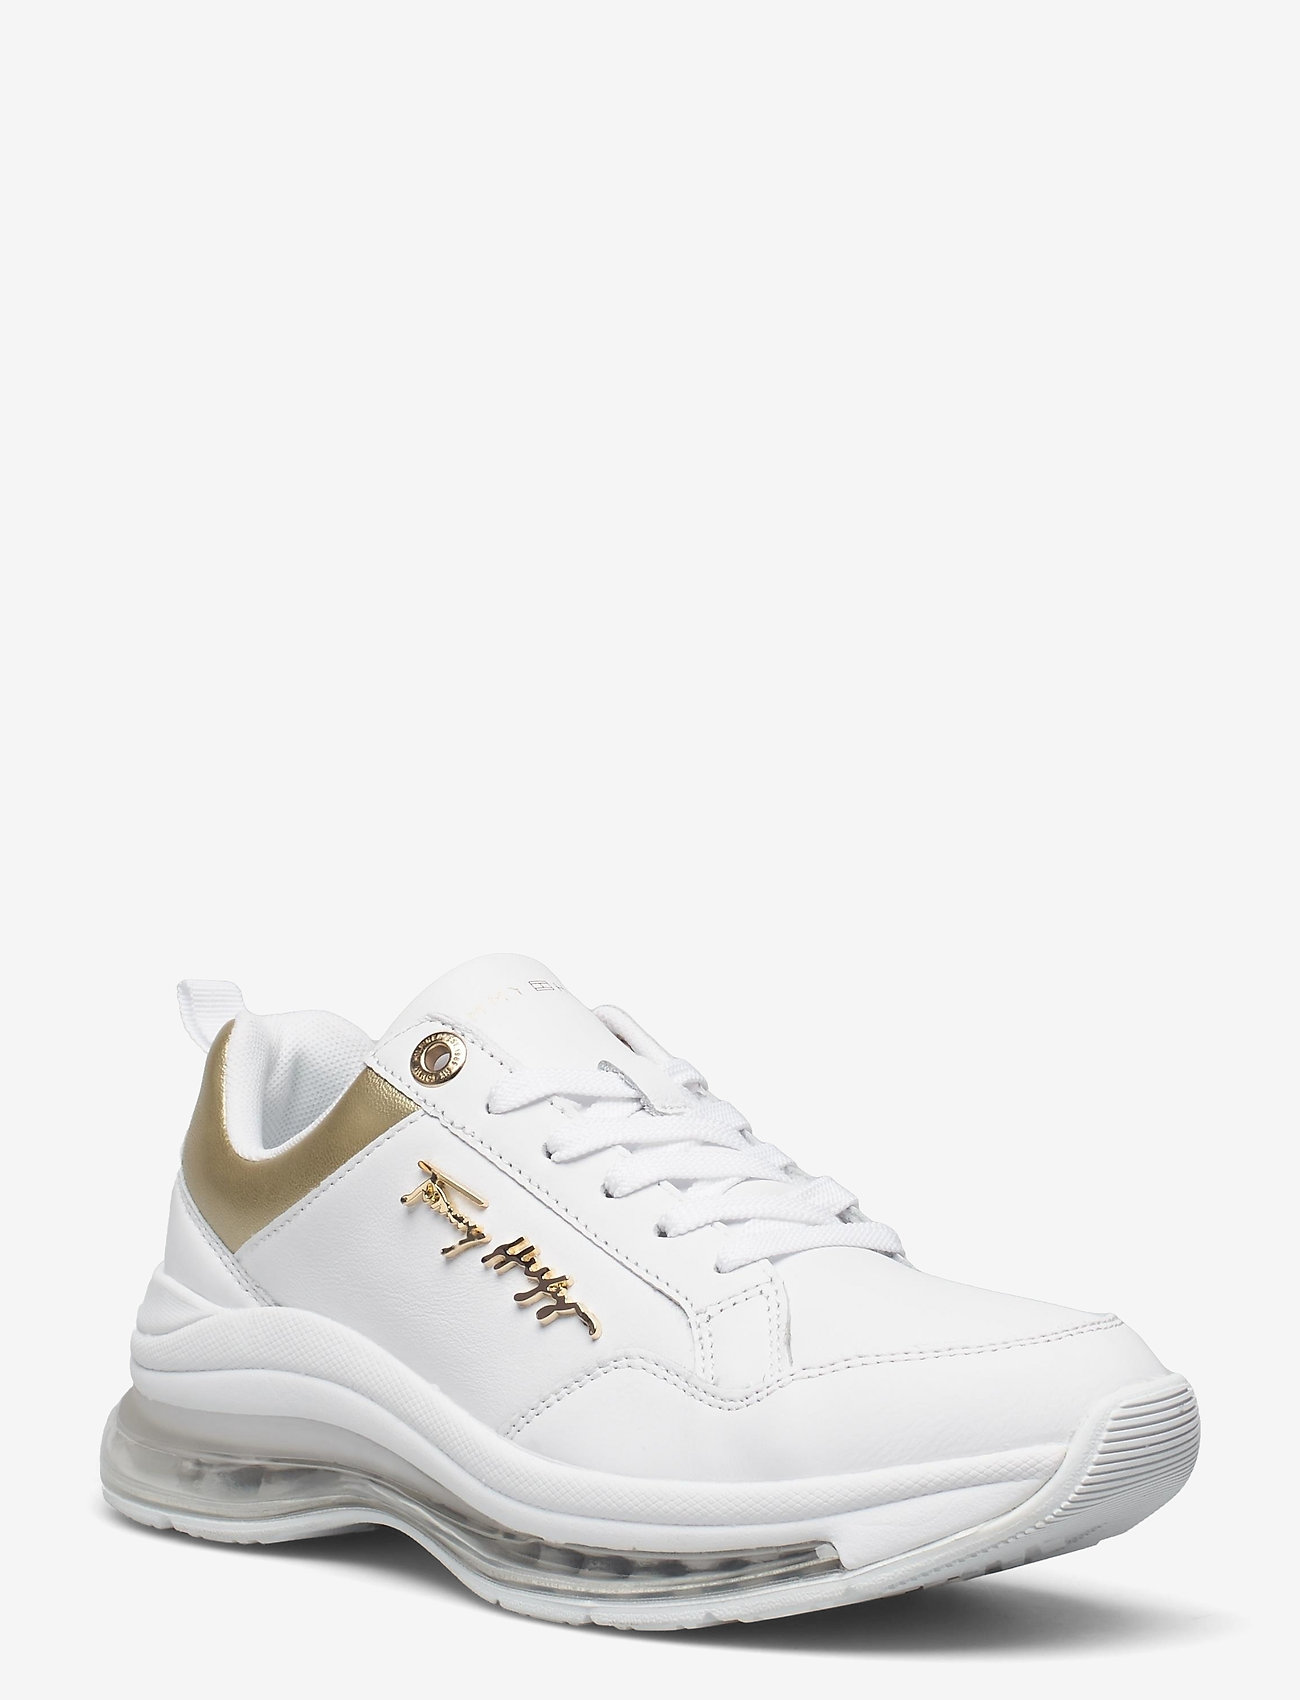 Tommy Hilfiger - CITY AIR RUNNER METALLIC - low top sneakers - white - 1